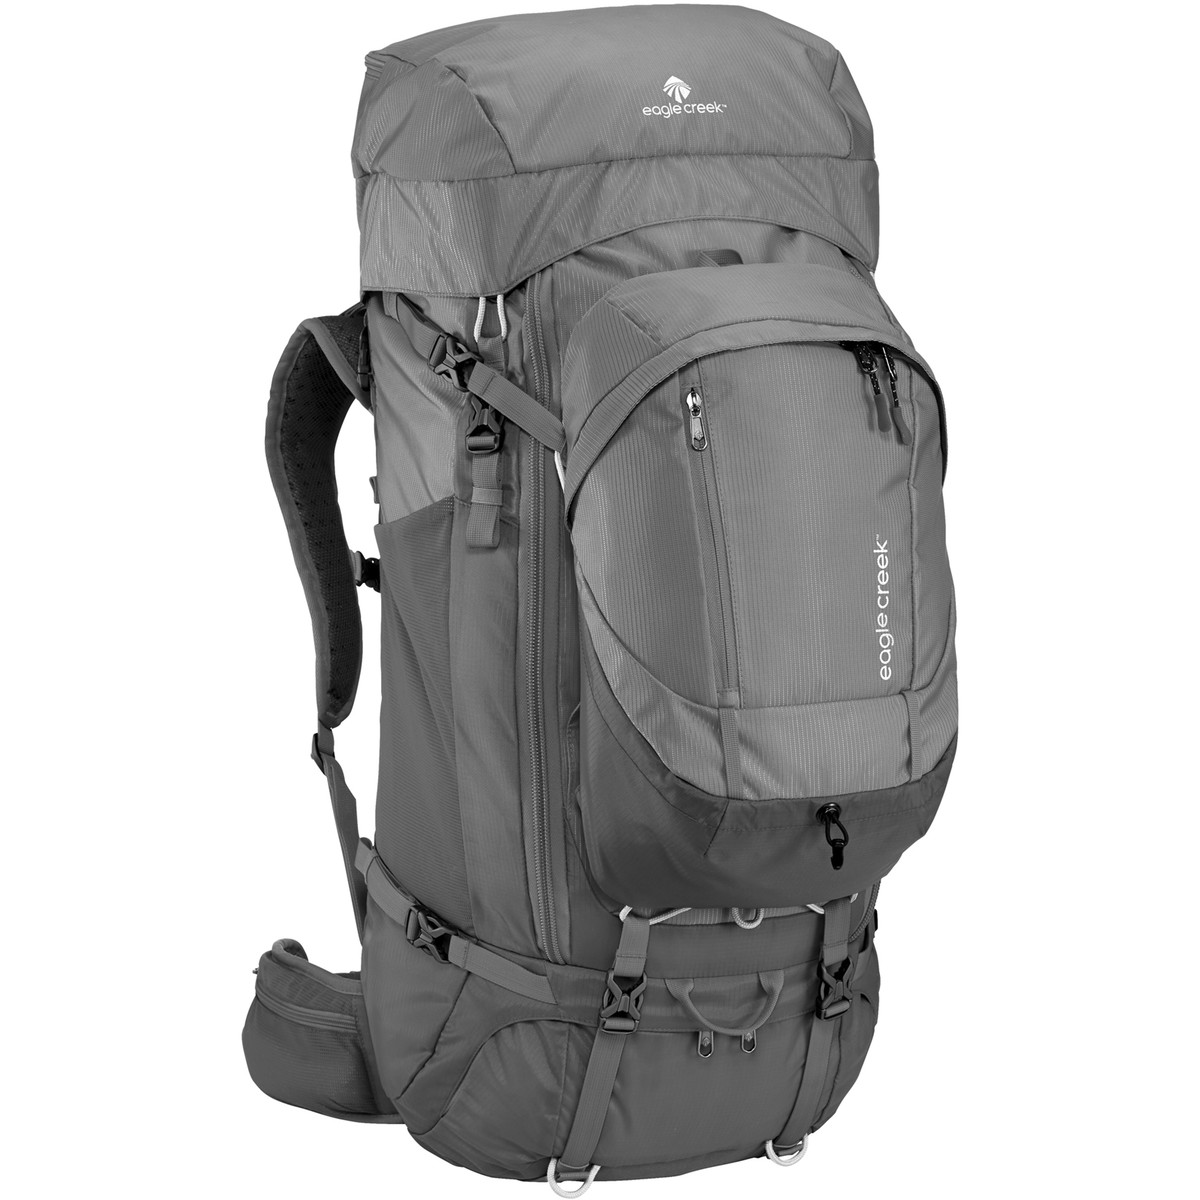 photo: Eagle Creek Women's Deviate 85L Travel Backpack expedition pack (70l+)